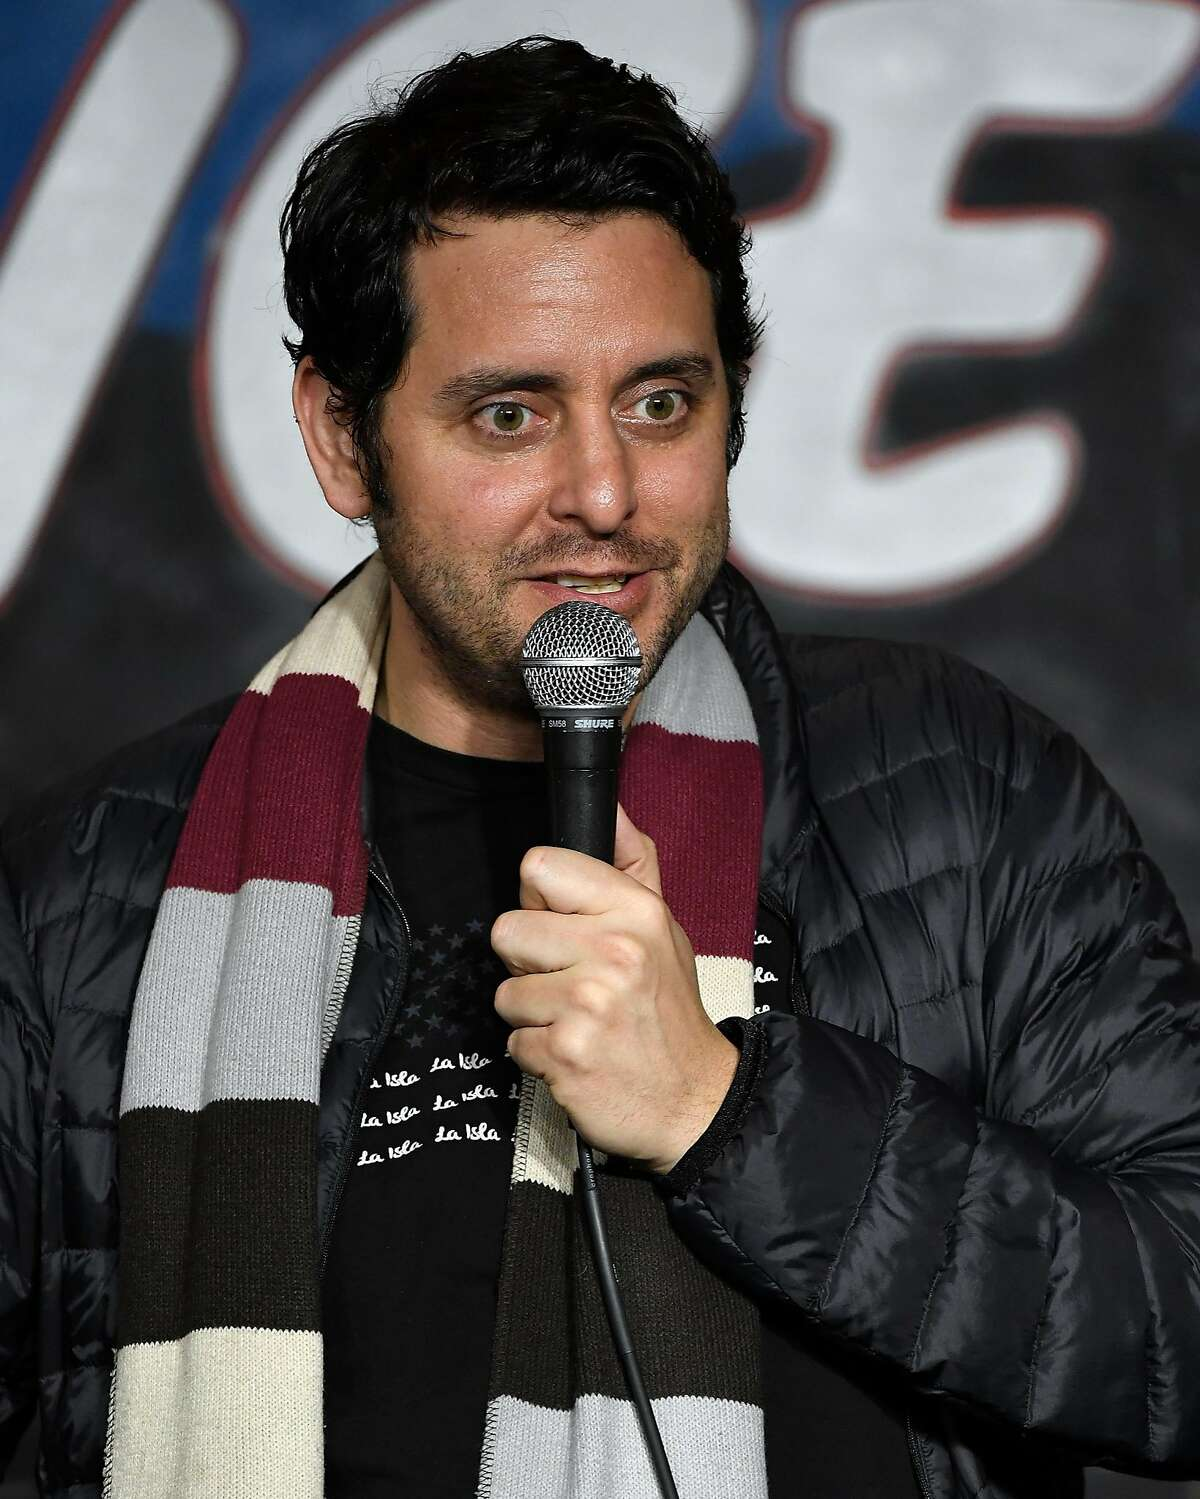 PASADENA, CA - FEBRUARY 01: Comedian Ben Gleib performs during his appearance at The Ice House Comedy Club on February 1, 2017 in Pasadena, California.